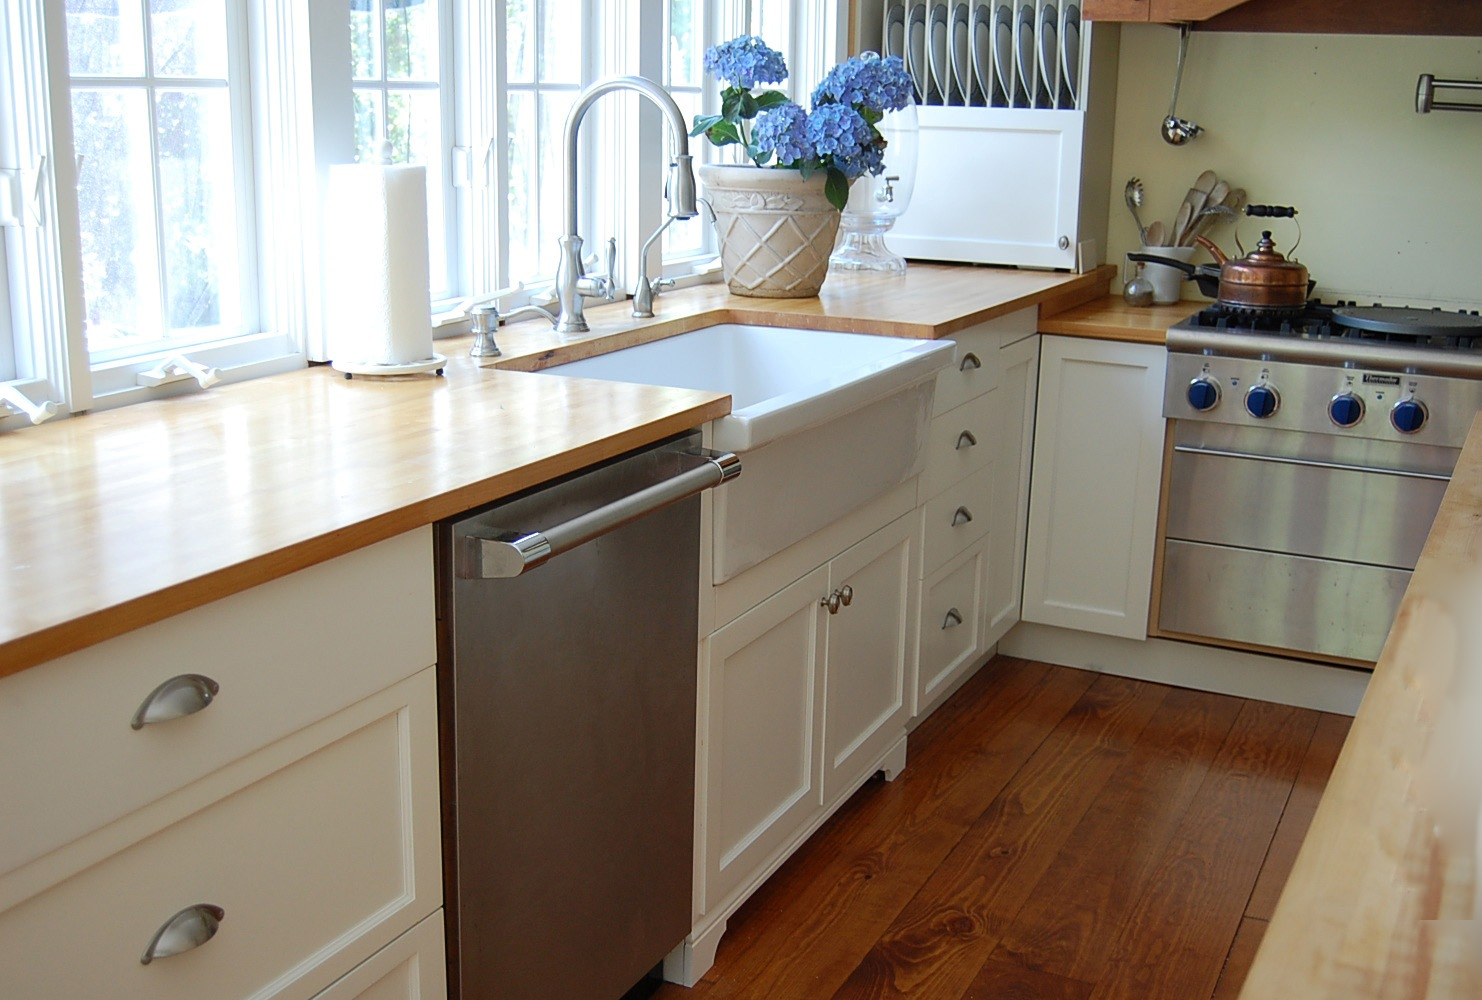 Ikea kitchen sink kitchen ideas for Kitchen cabinets ikea